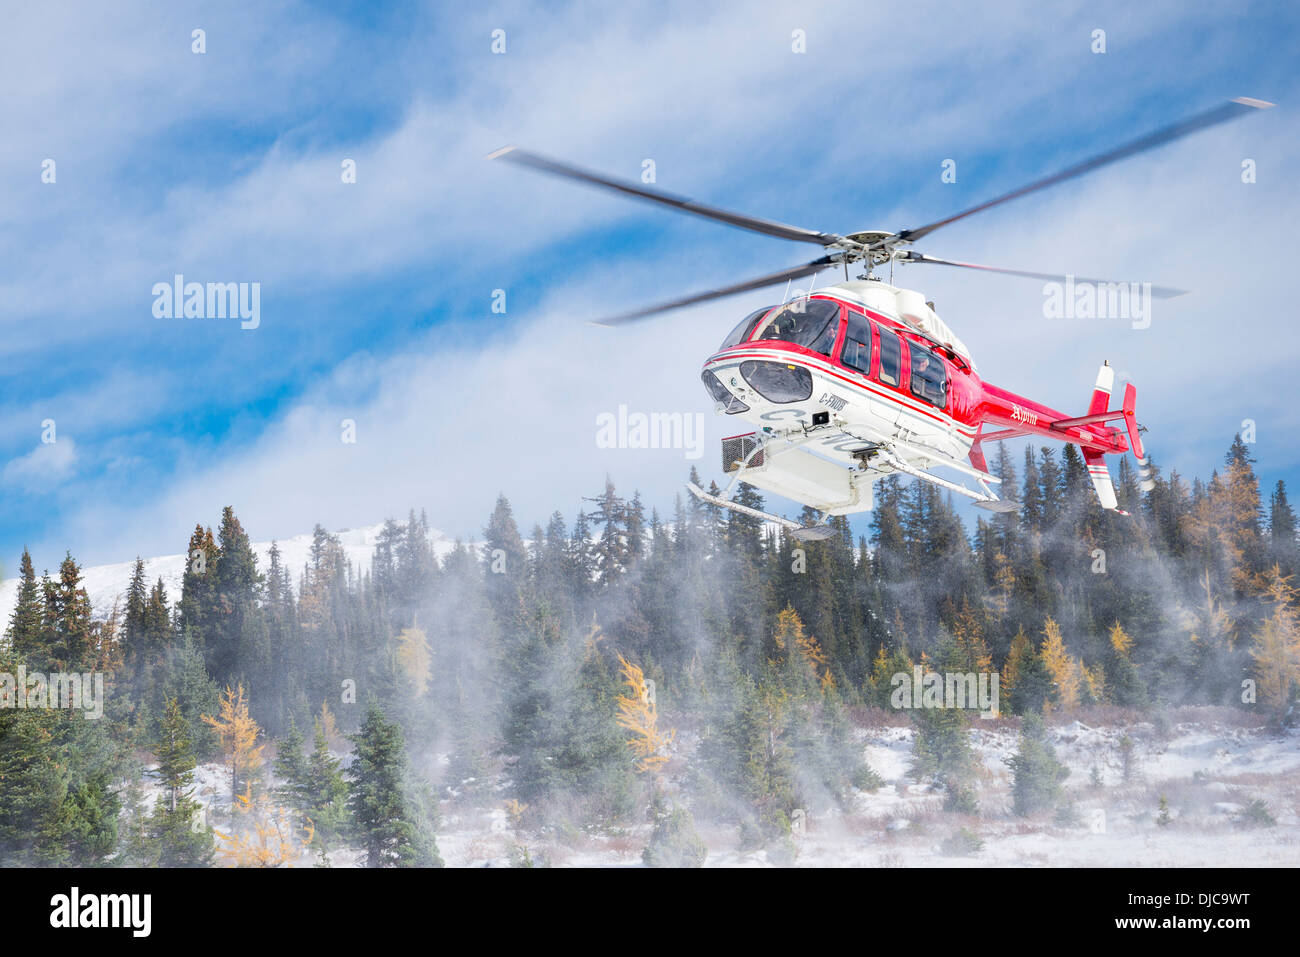 Helicopter Stock Photos & Helicopter Stock Images - Alamy